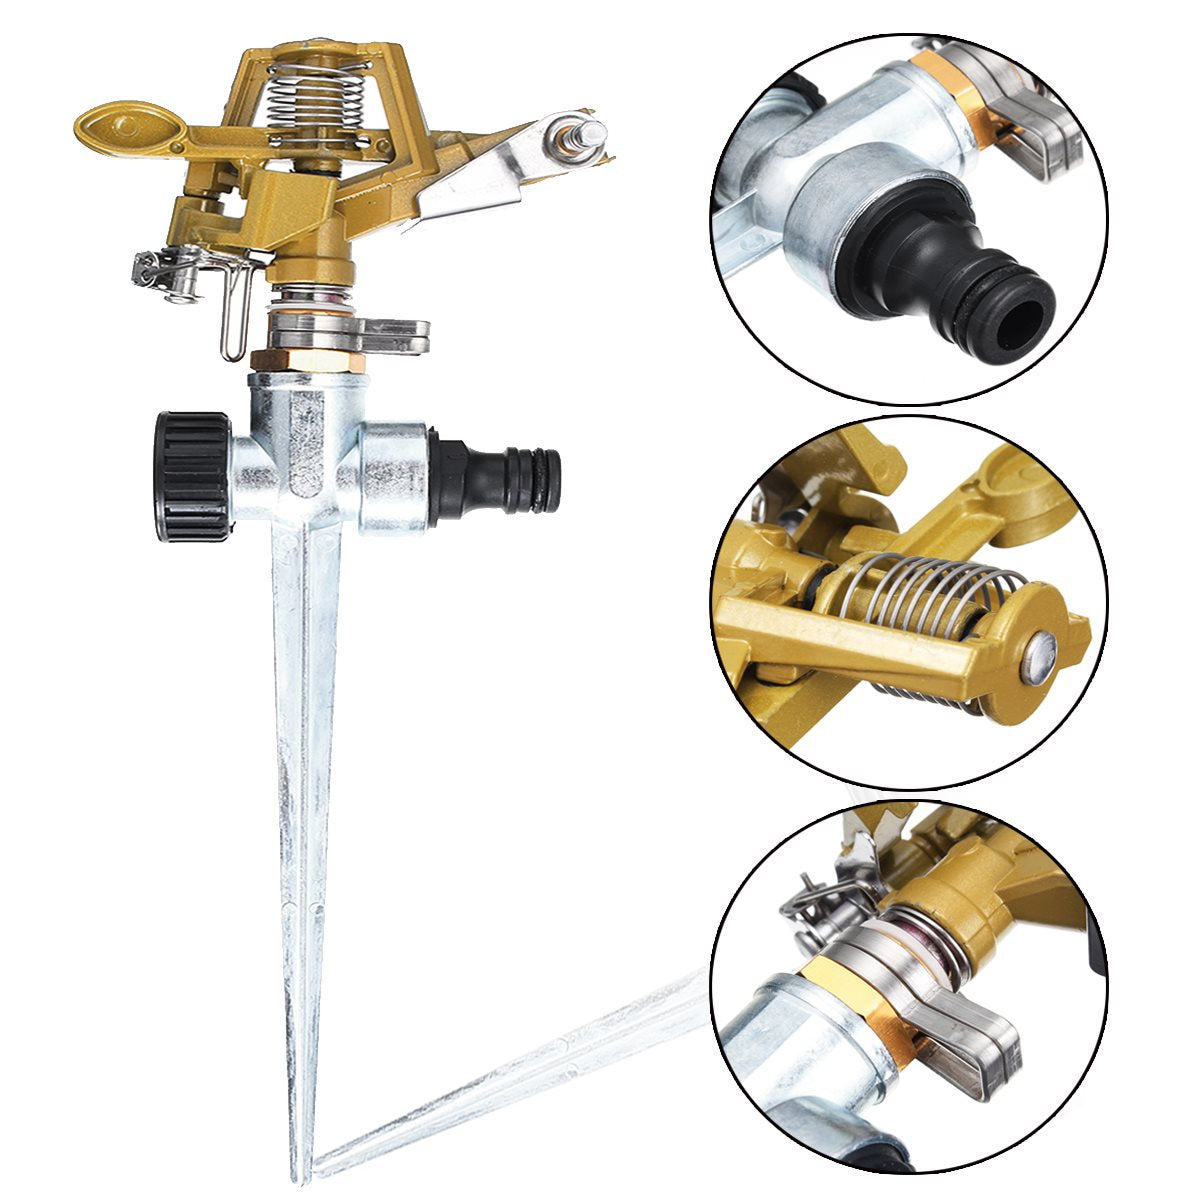 Costbuys  Zinc Alloy 360 Degree Rotary Irrigation Sprayer Sprinkler For Home Garden Yard Lawn Watering Supplies Gardening Tools